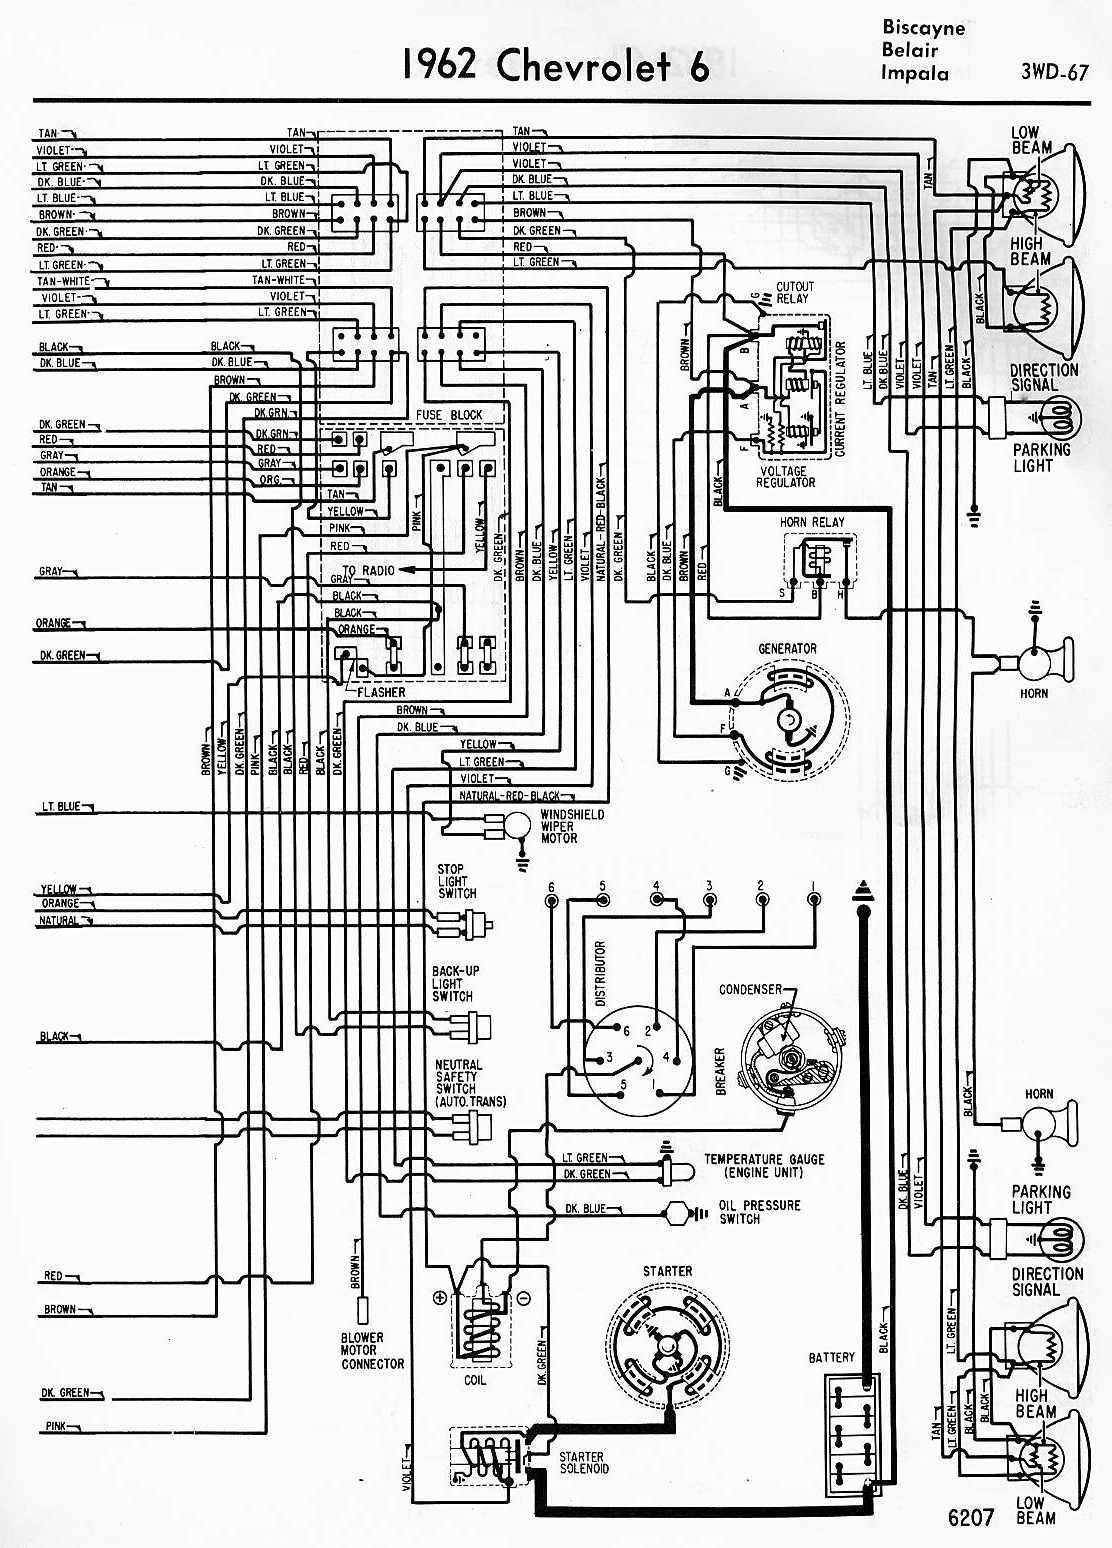 hight resolution of under dash wiring harness 1970 impala wiring diagram mega 1970 chevy impala full size wiring harness diagram manual